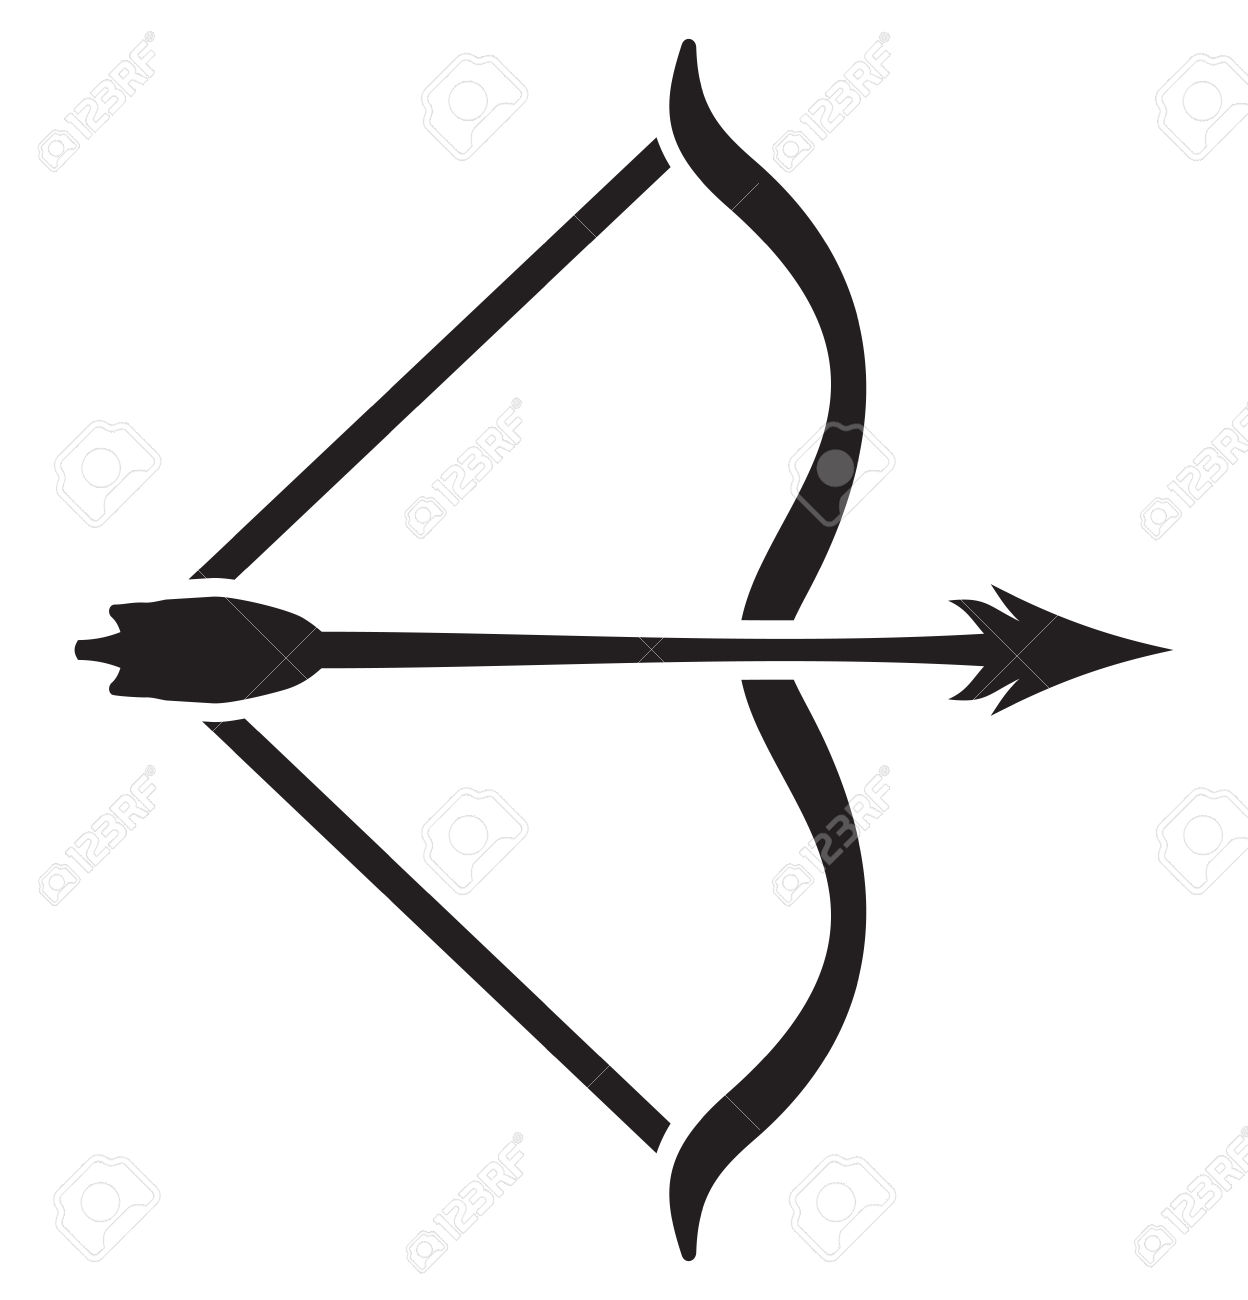 Arrow Clipart Black And White